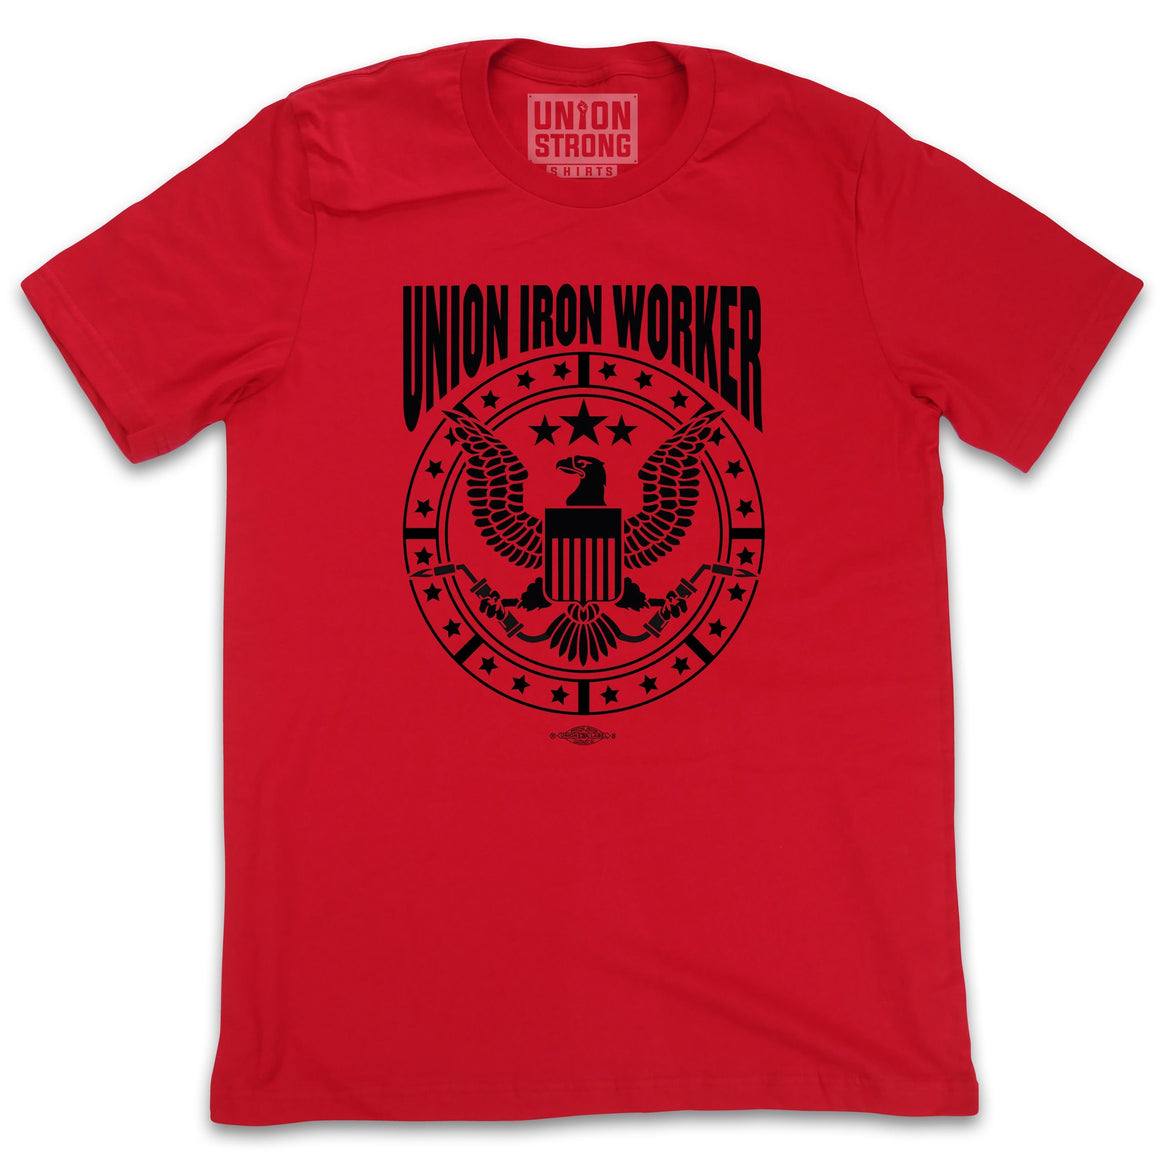 Union Iron Worker - Eagle Logo Shirts unionstrongshirts